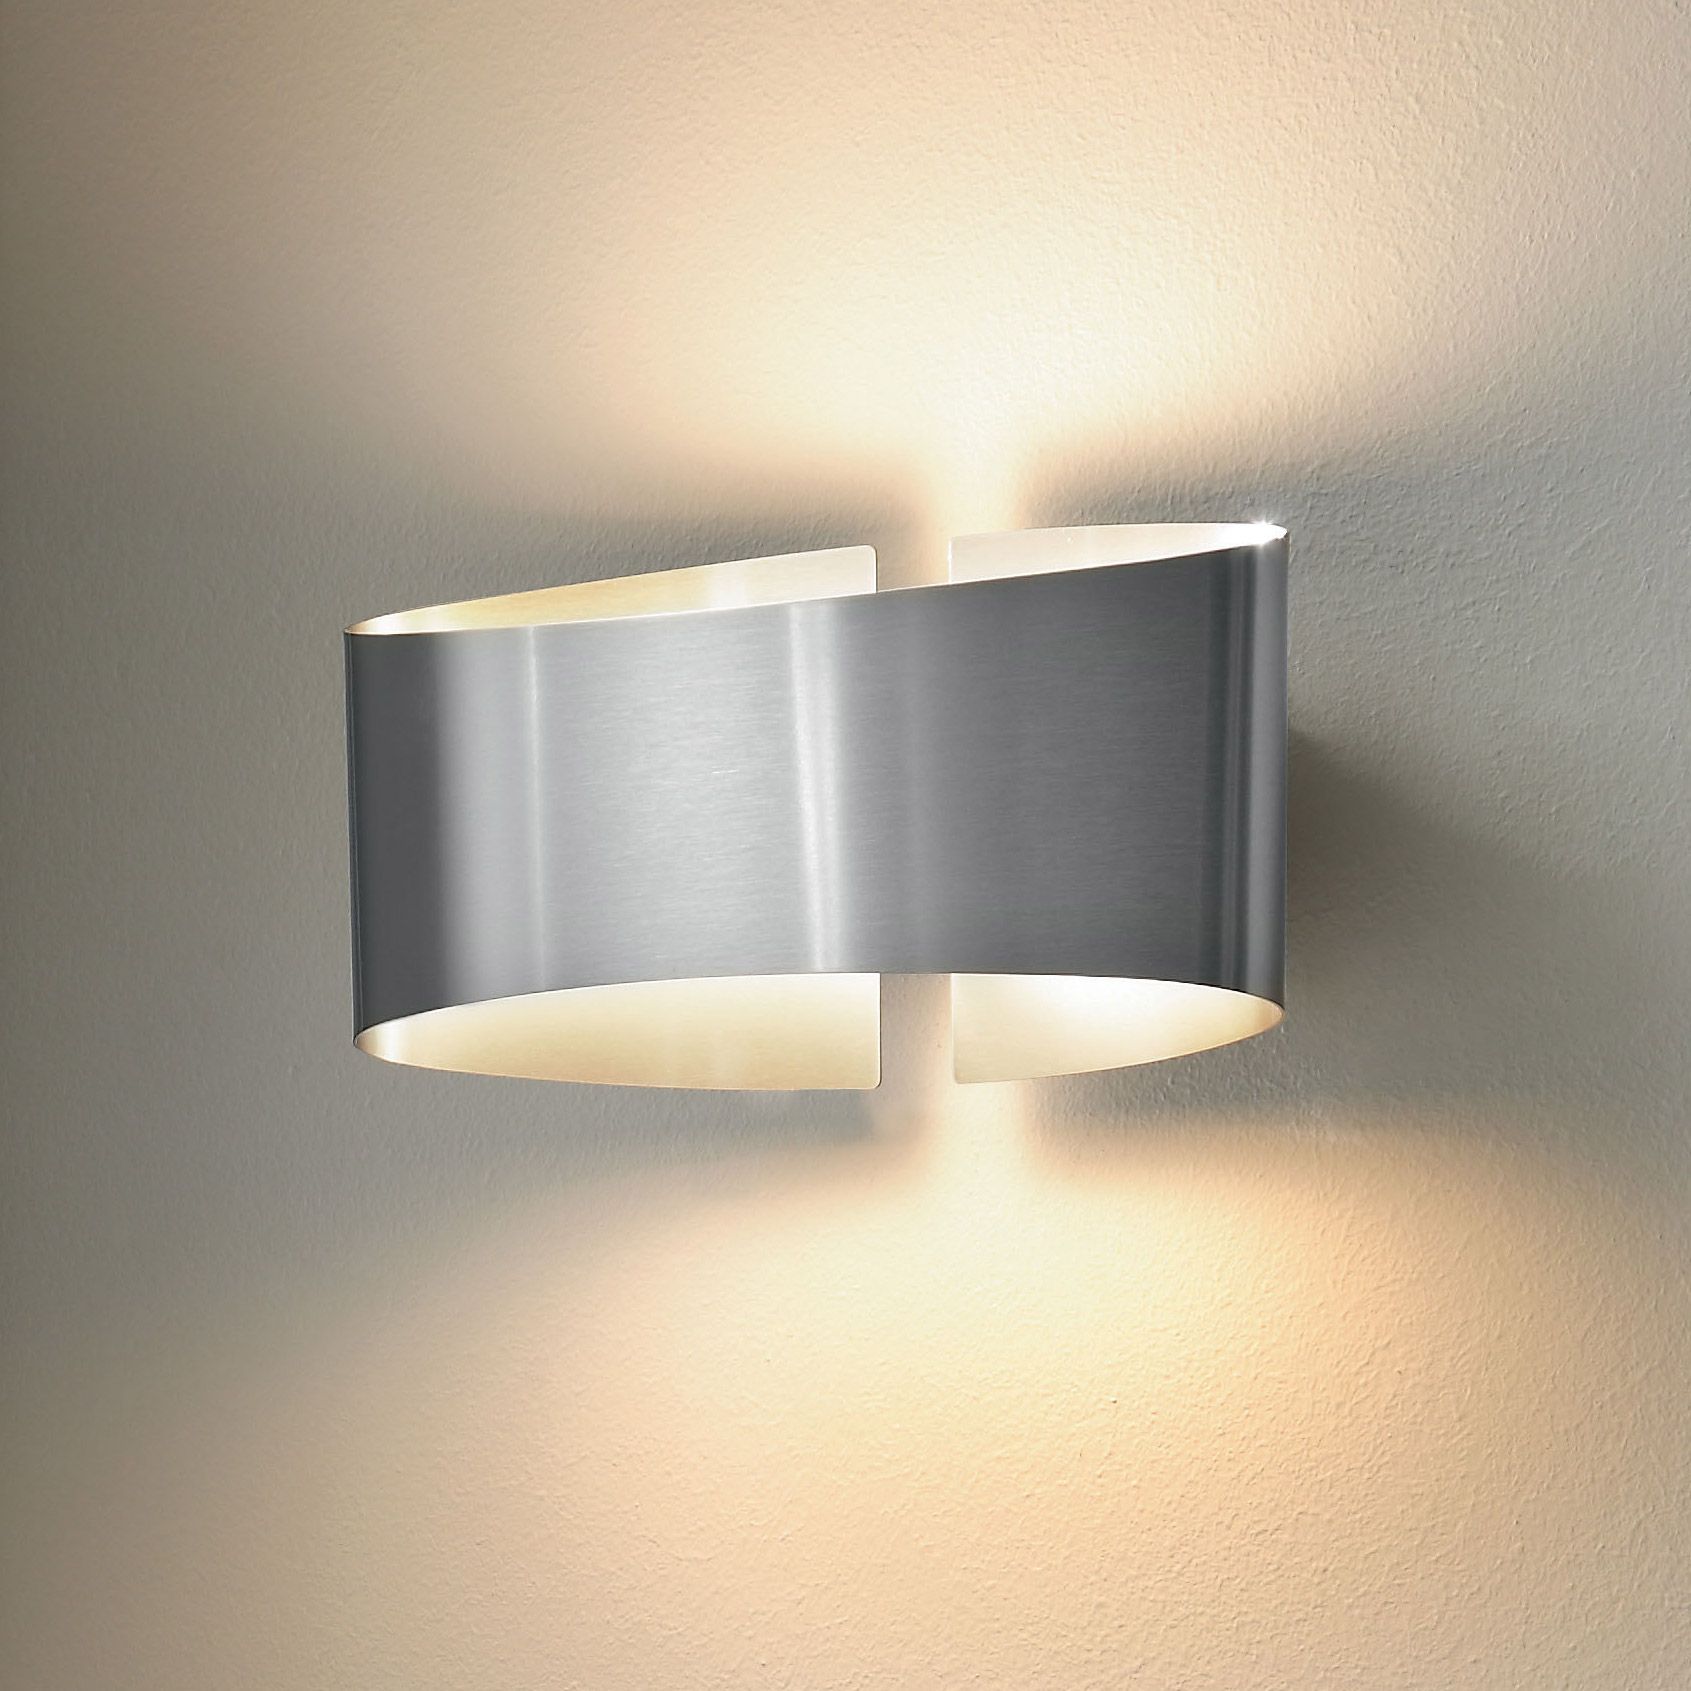 Voila Metal Wall Light By Holtkoetter 8501 Sts